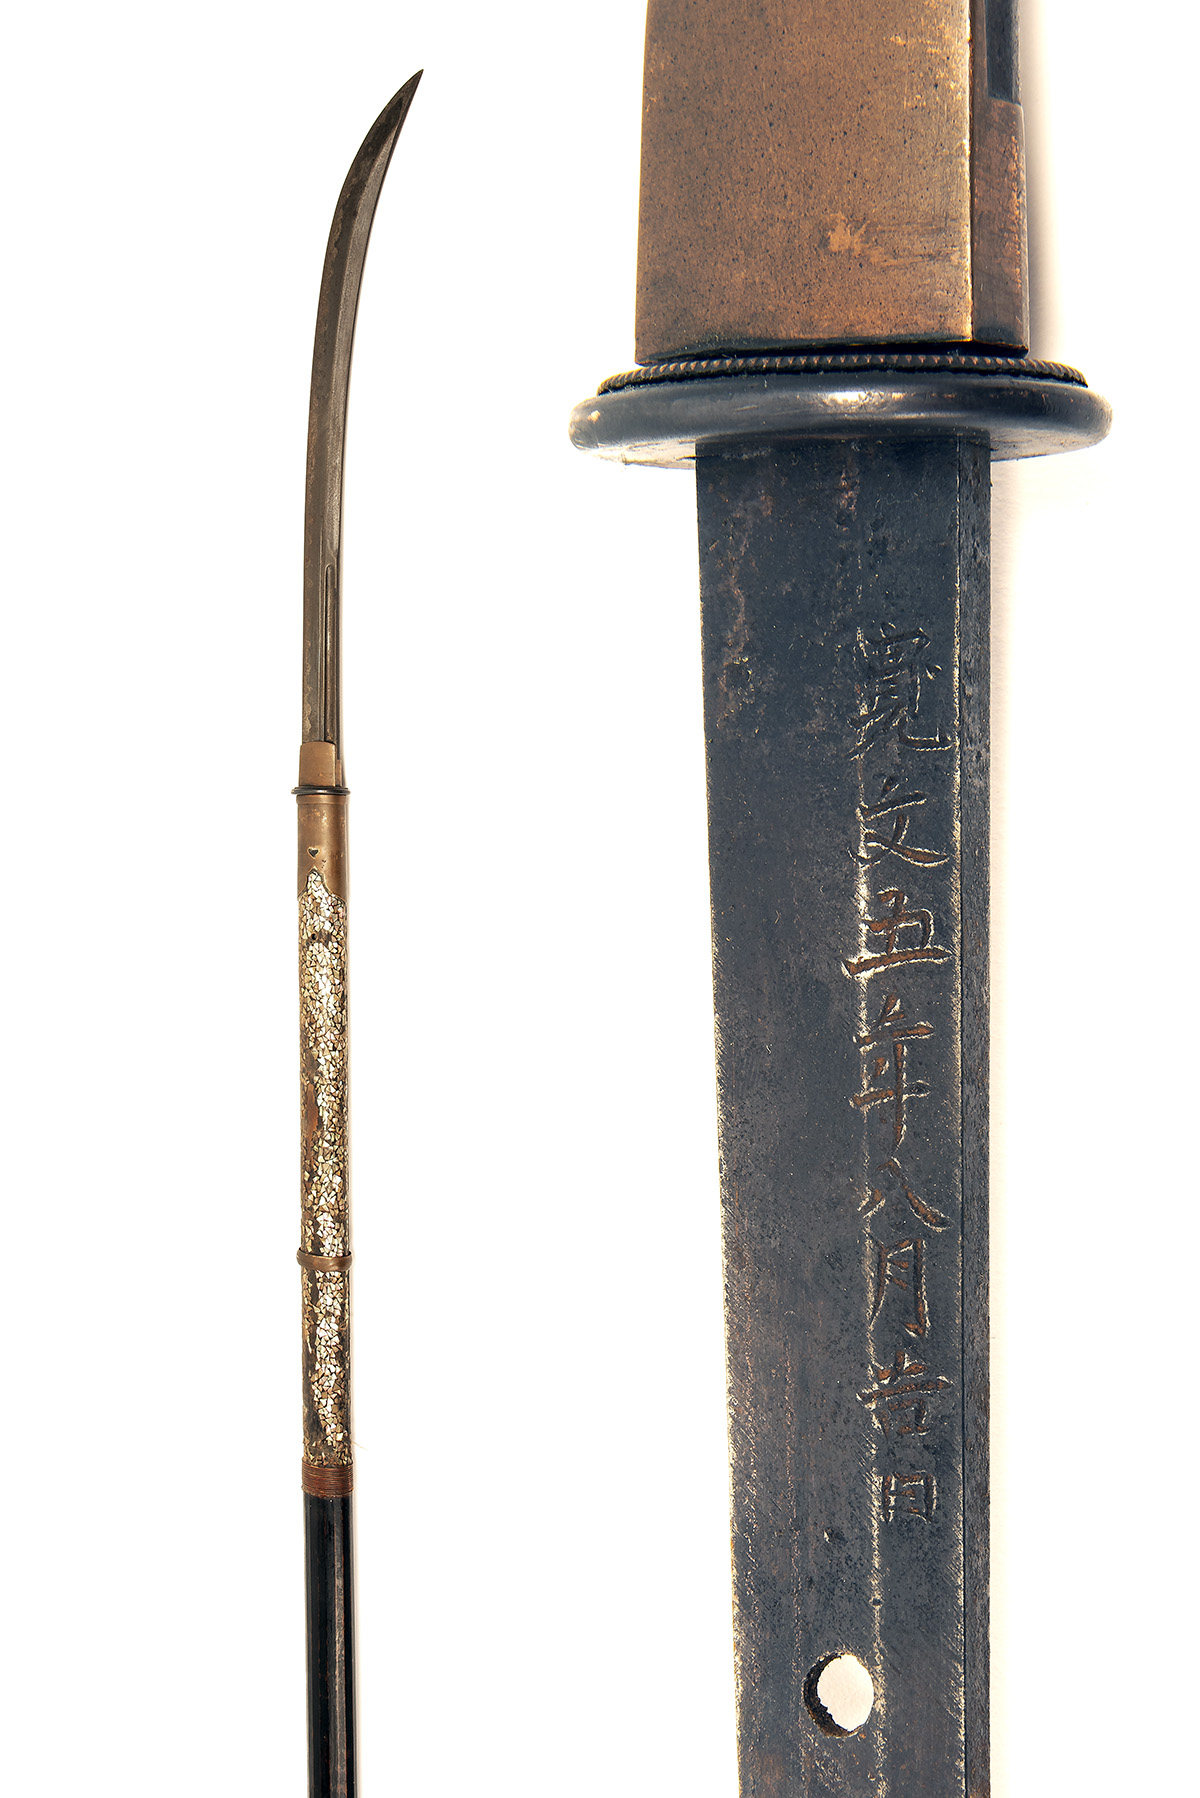 A JAPANESE NAGINATA POLEARM, circa 1800, with curving 18in. blade signed on both sides of the